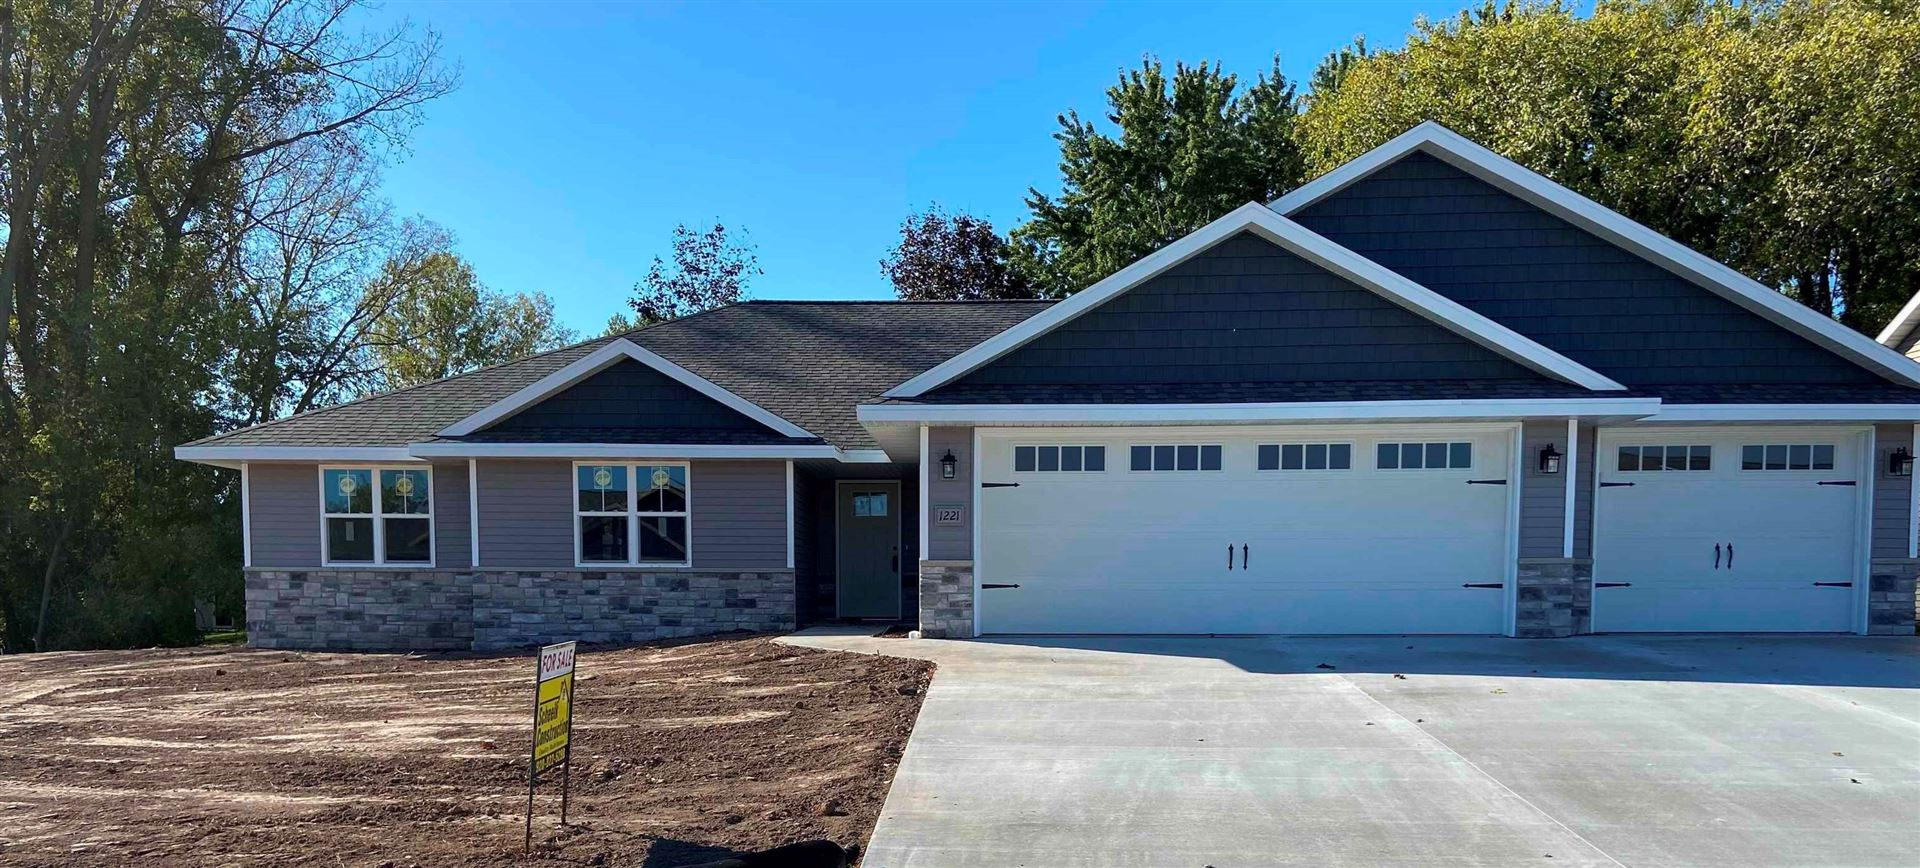 1221 CLEMENTINE Road, Green Bay, WI 54313 - MLS#: 50248269